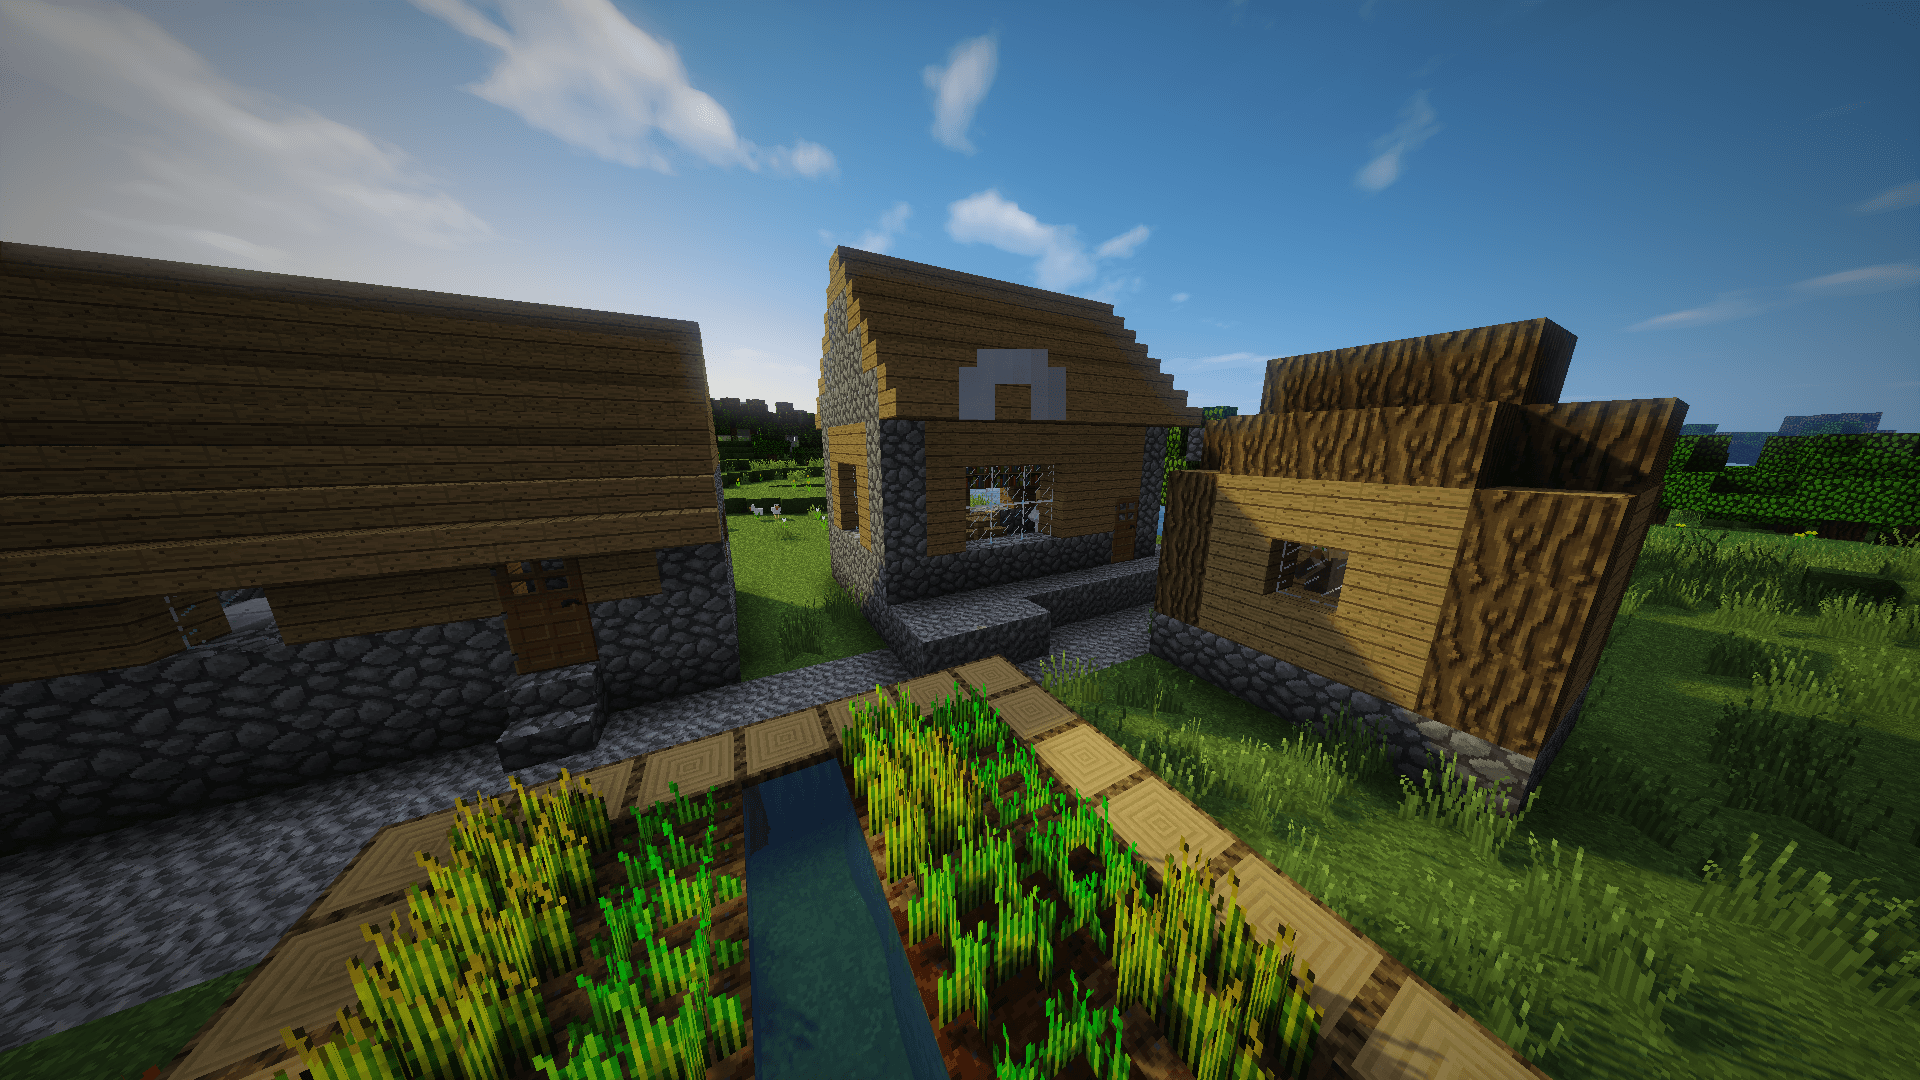 Minecraft Shaders Wallpapers - Top Free Minecraft Shaders